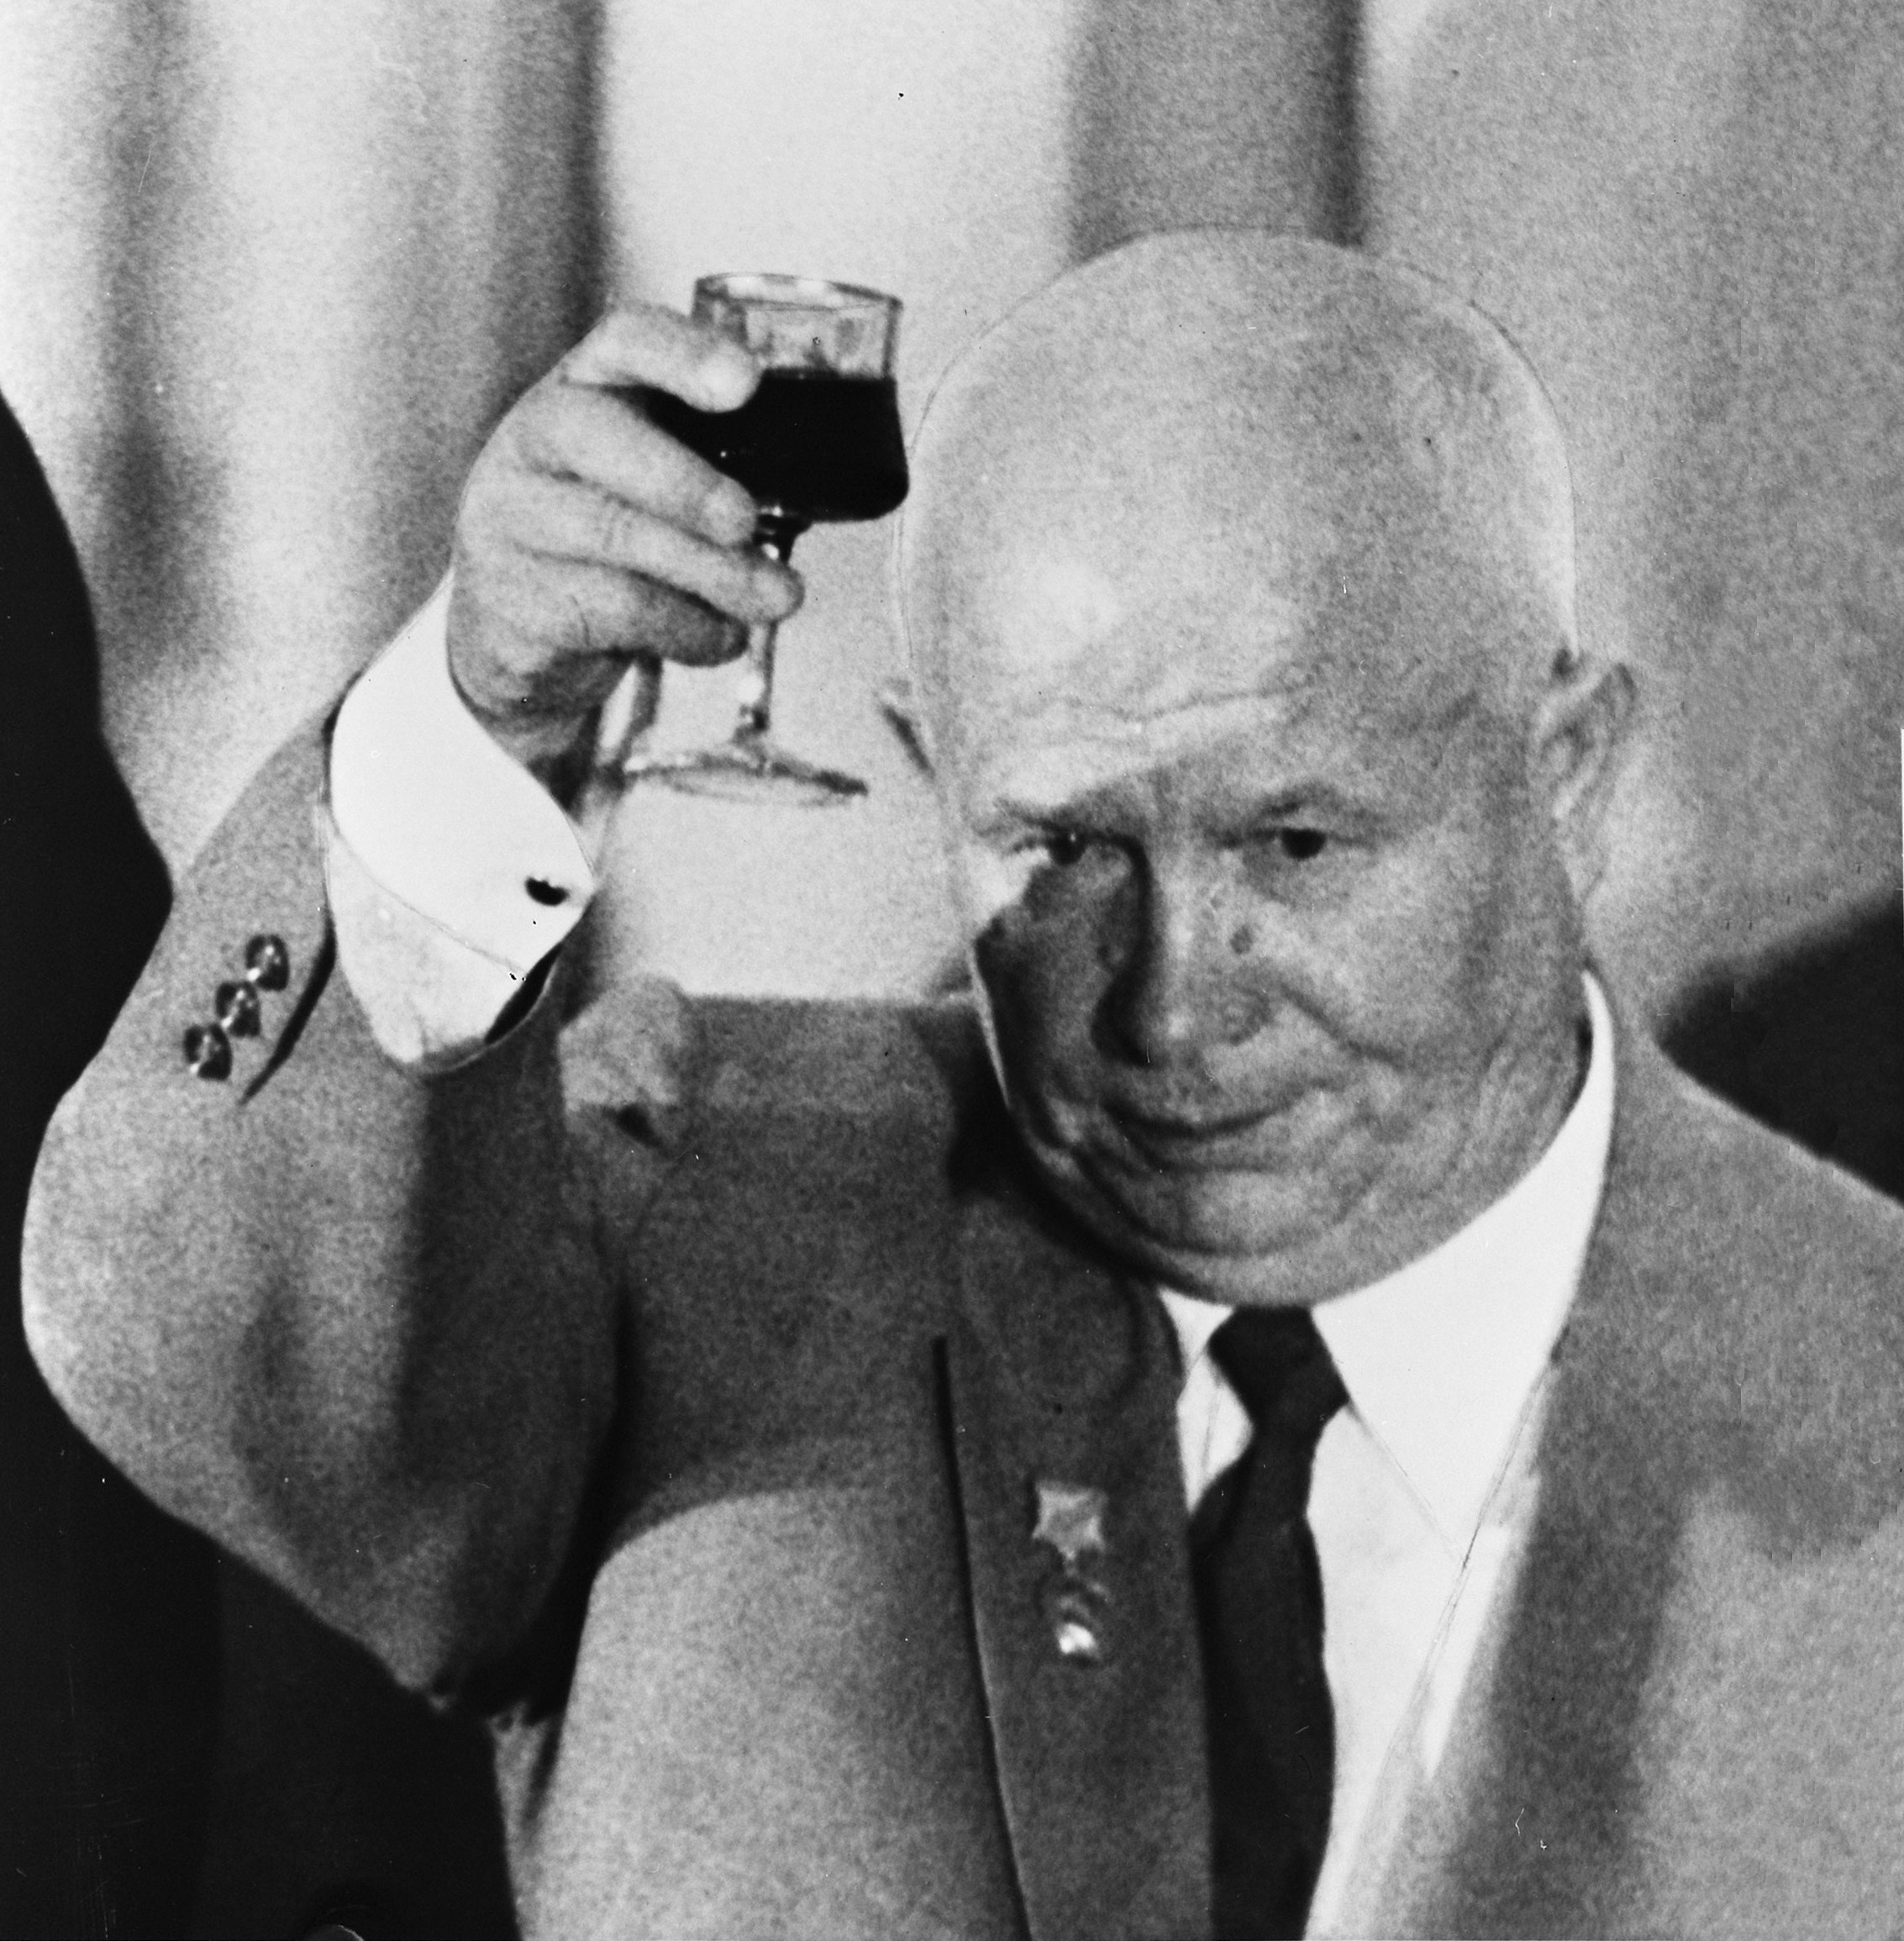 the duo of khrushchev and gorbachev